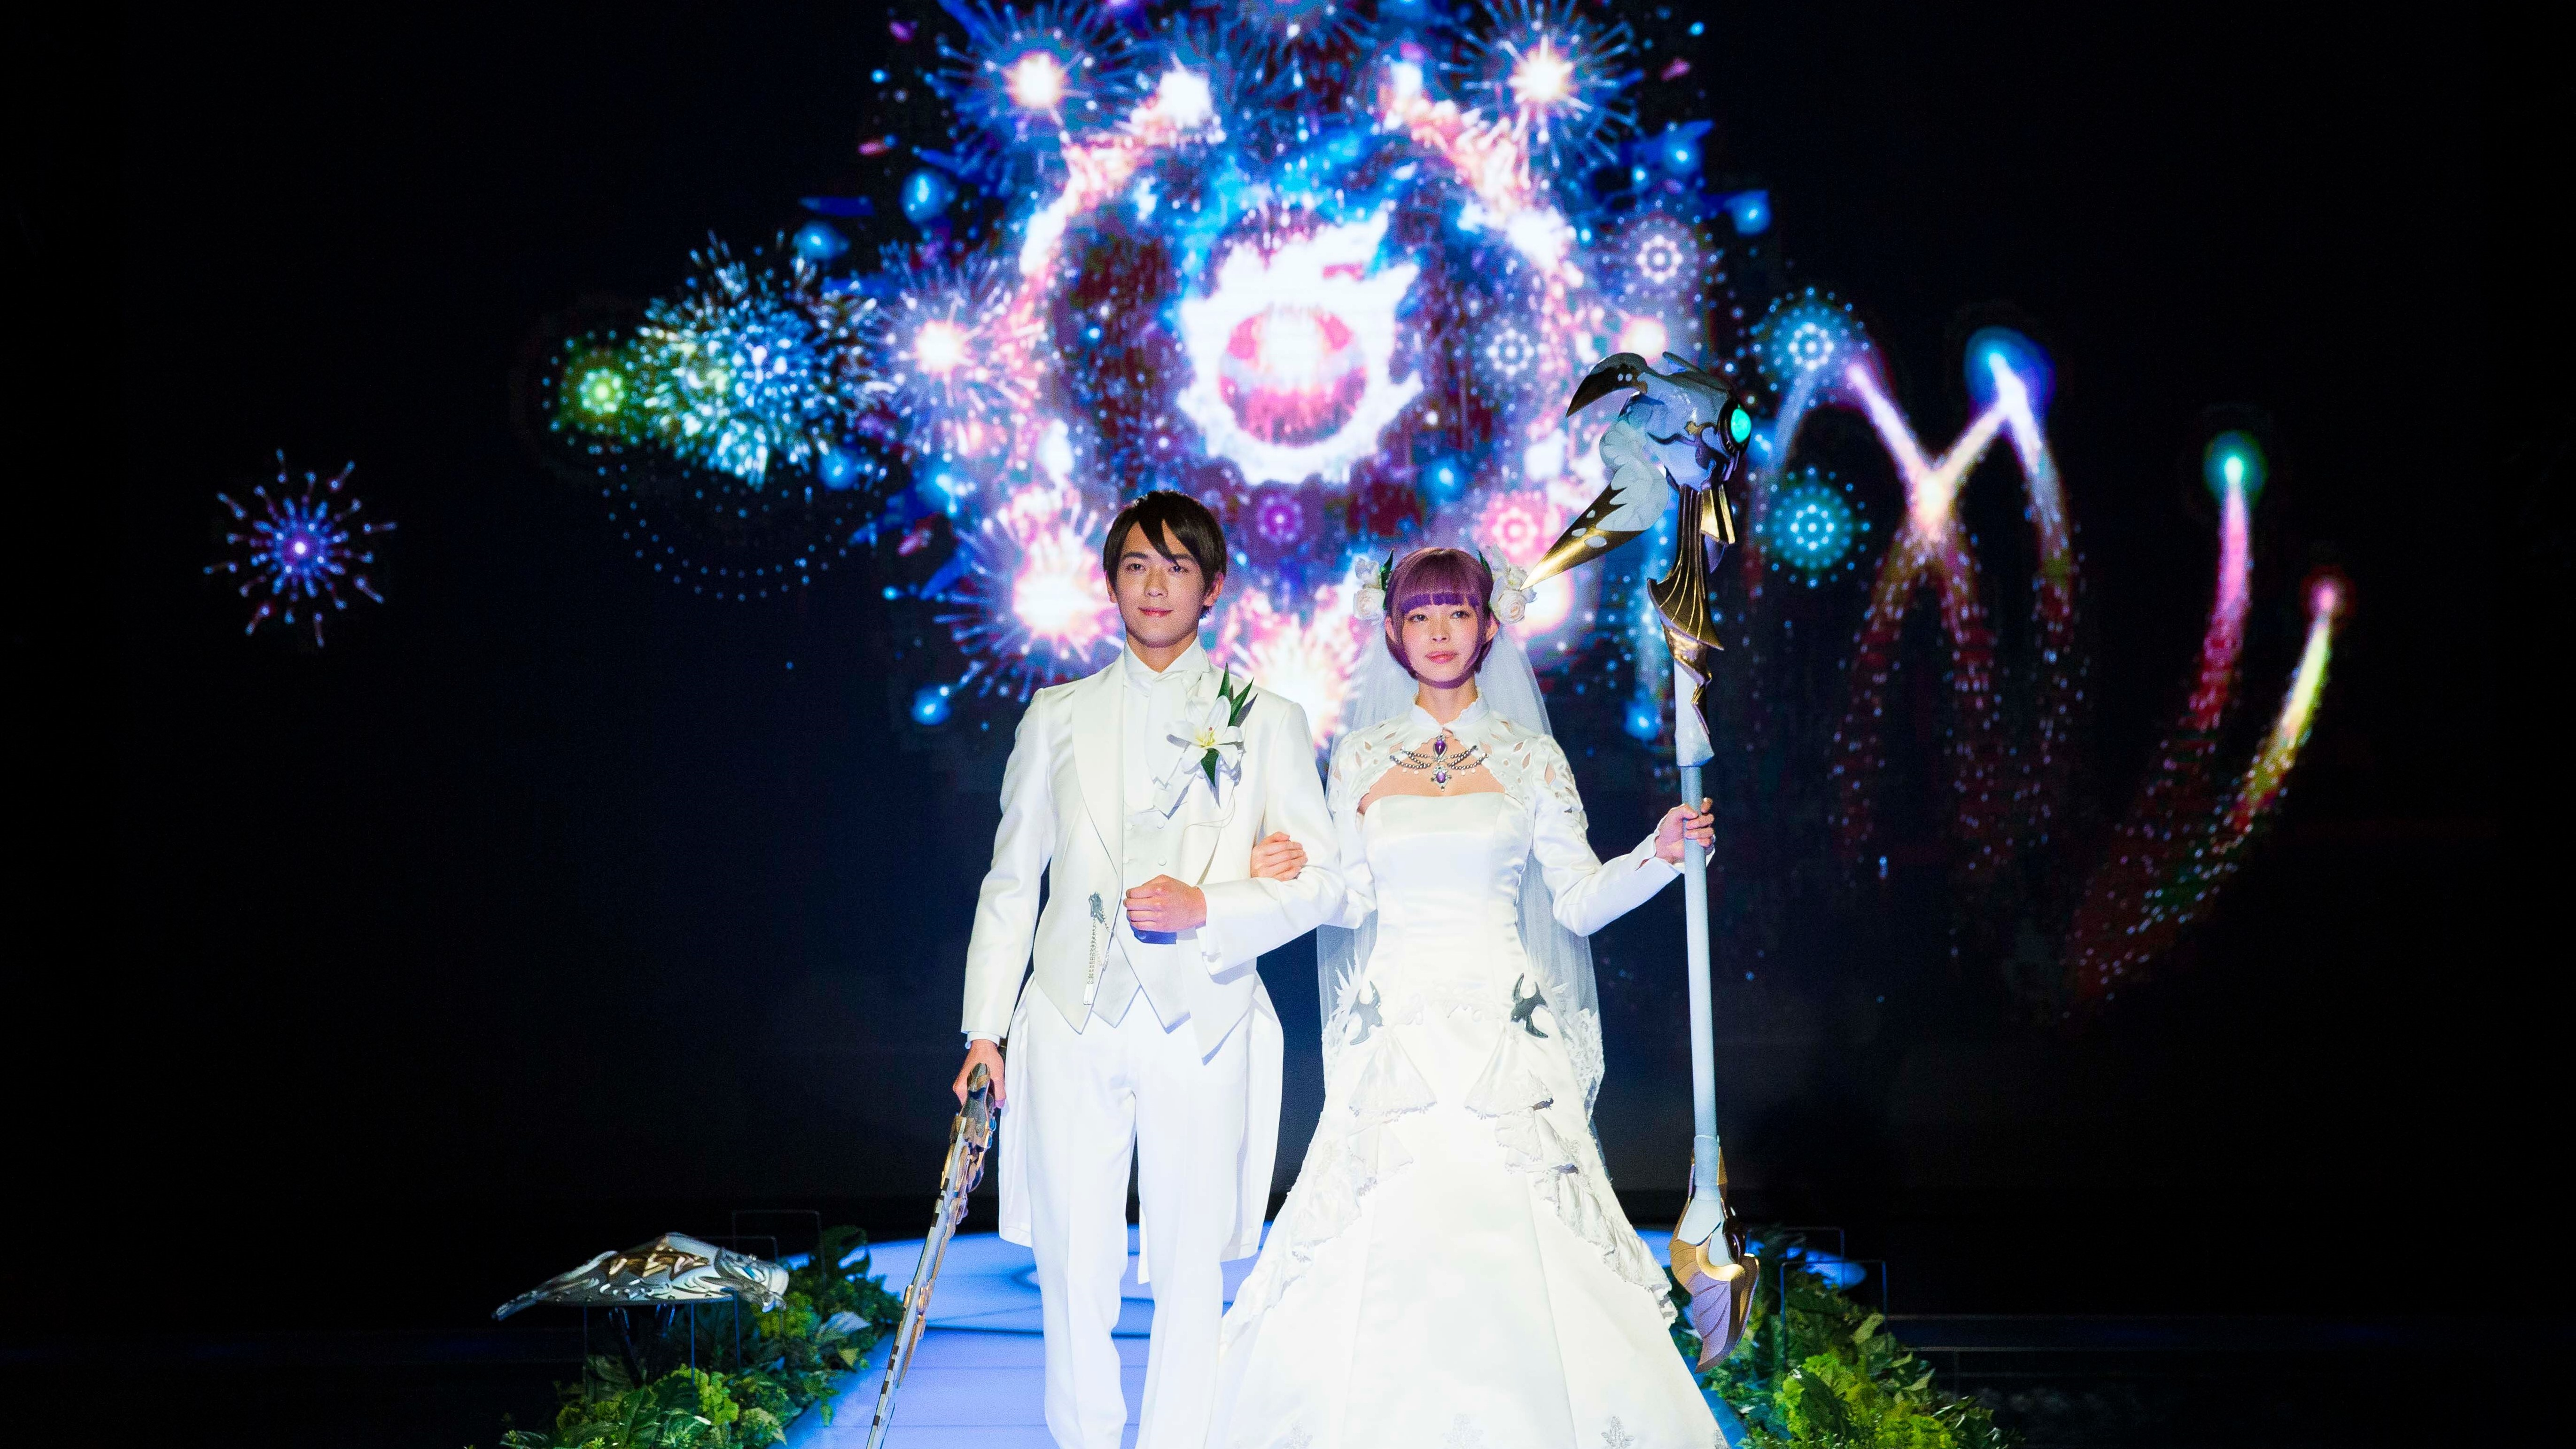 Real Life Final Fantasy Wedding Service Provides Giant